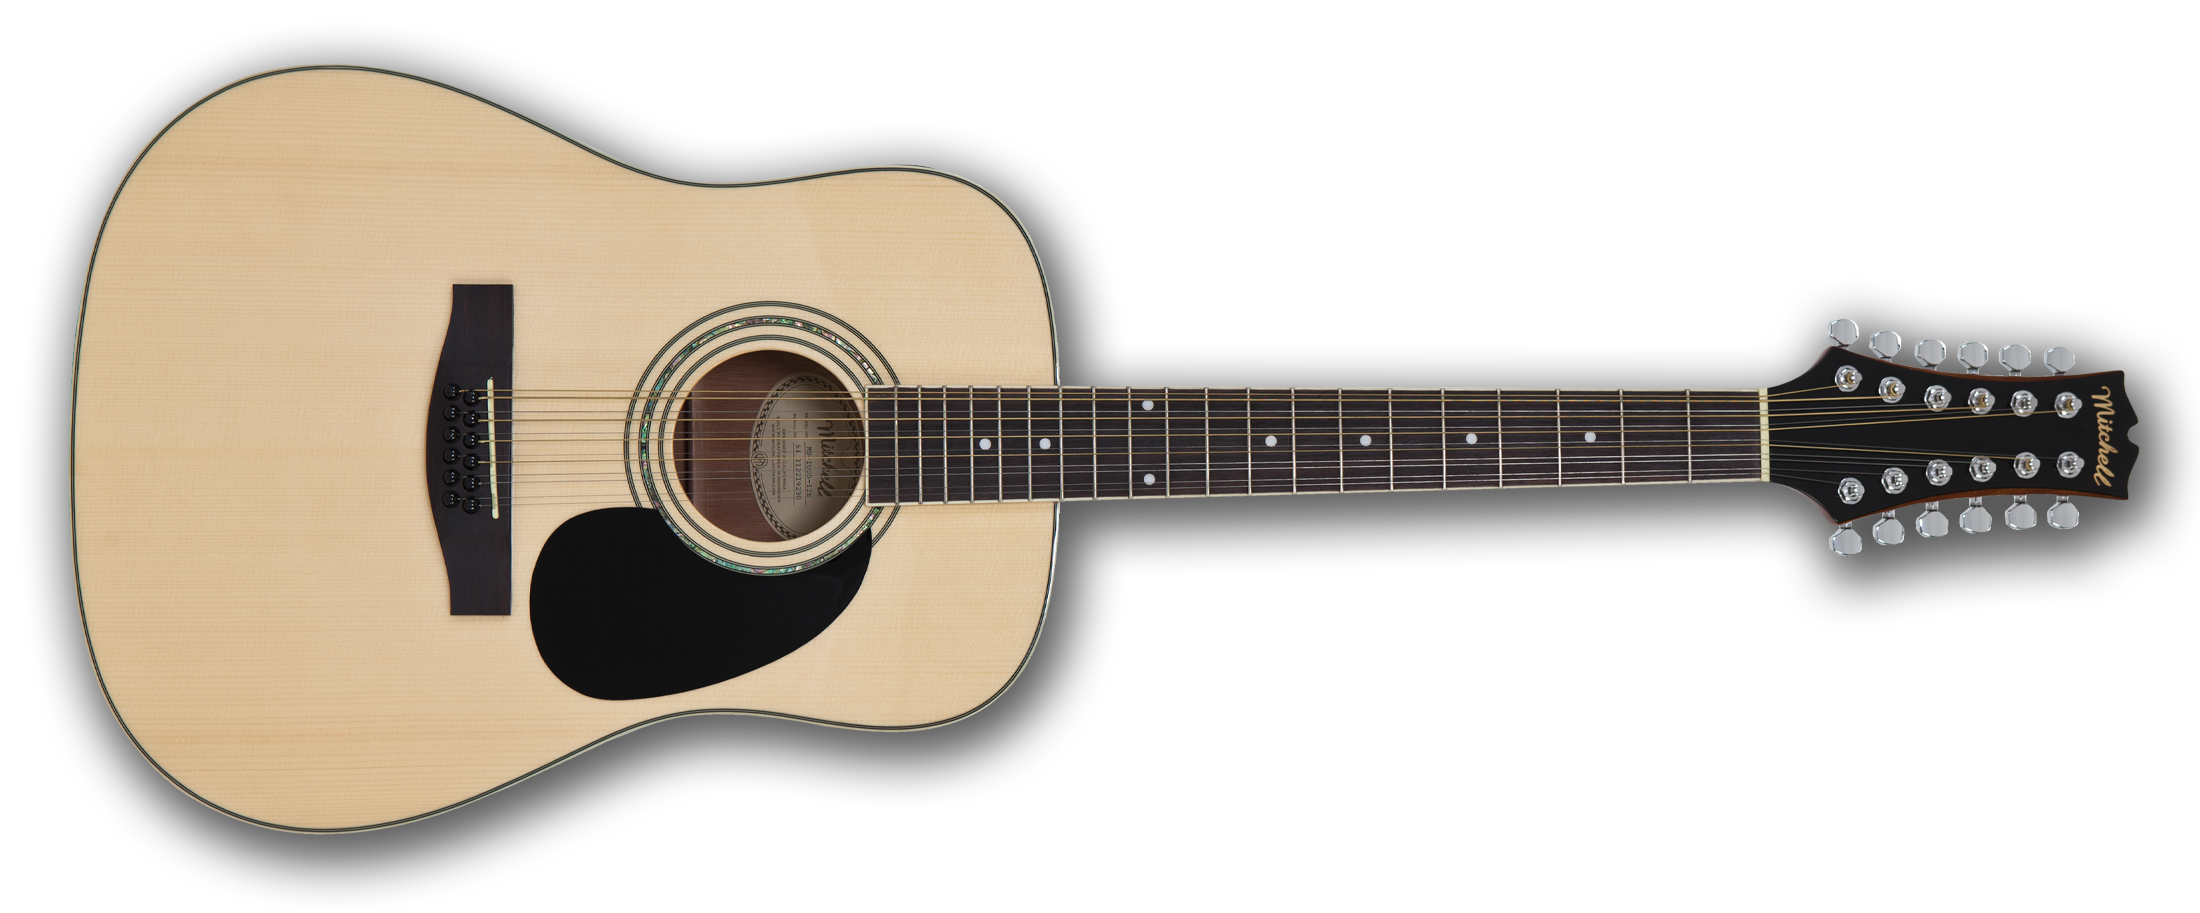 Mitchell MD100S12E 12-String Dreadnought Acoustic-Electric Guitar